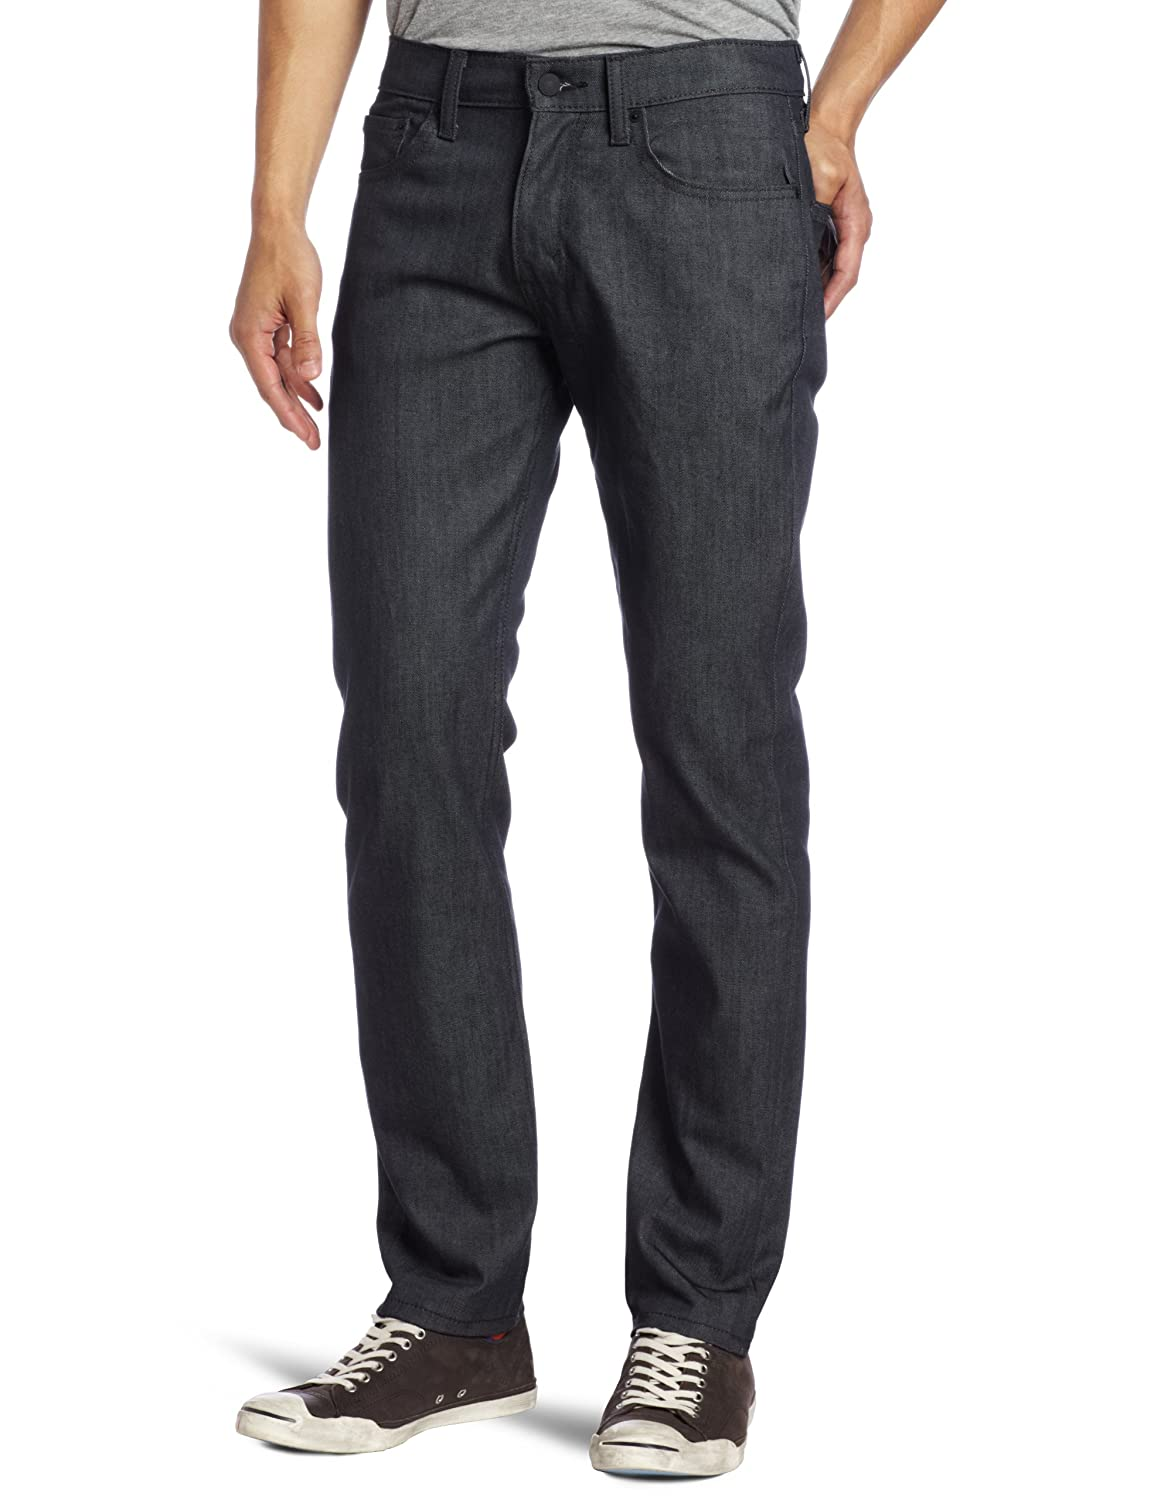 Amazon.com: Levi's Men's 511 Slim Fit Jean: Levi's: Clothing